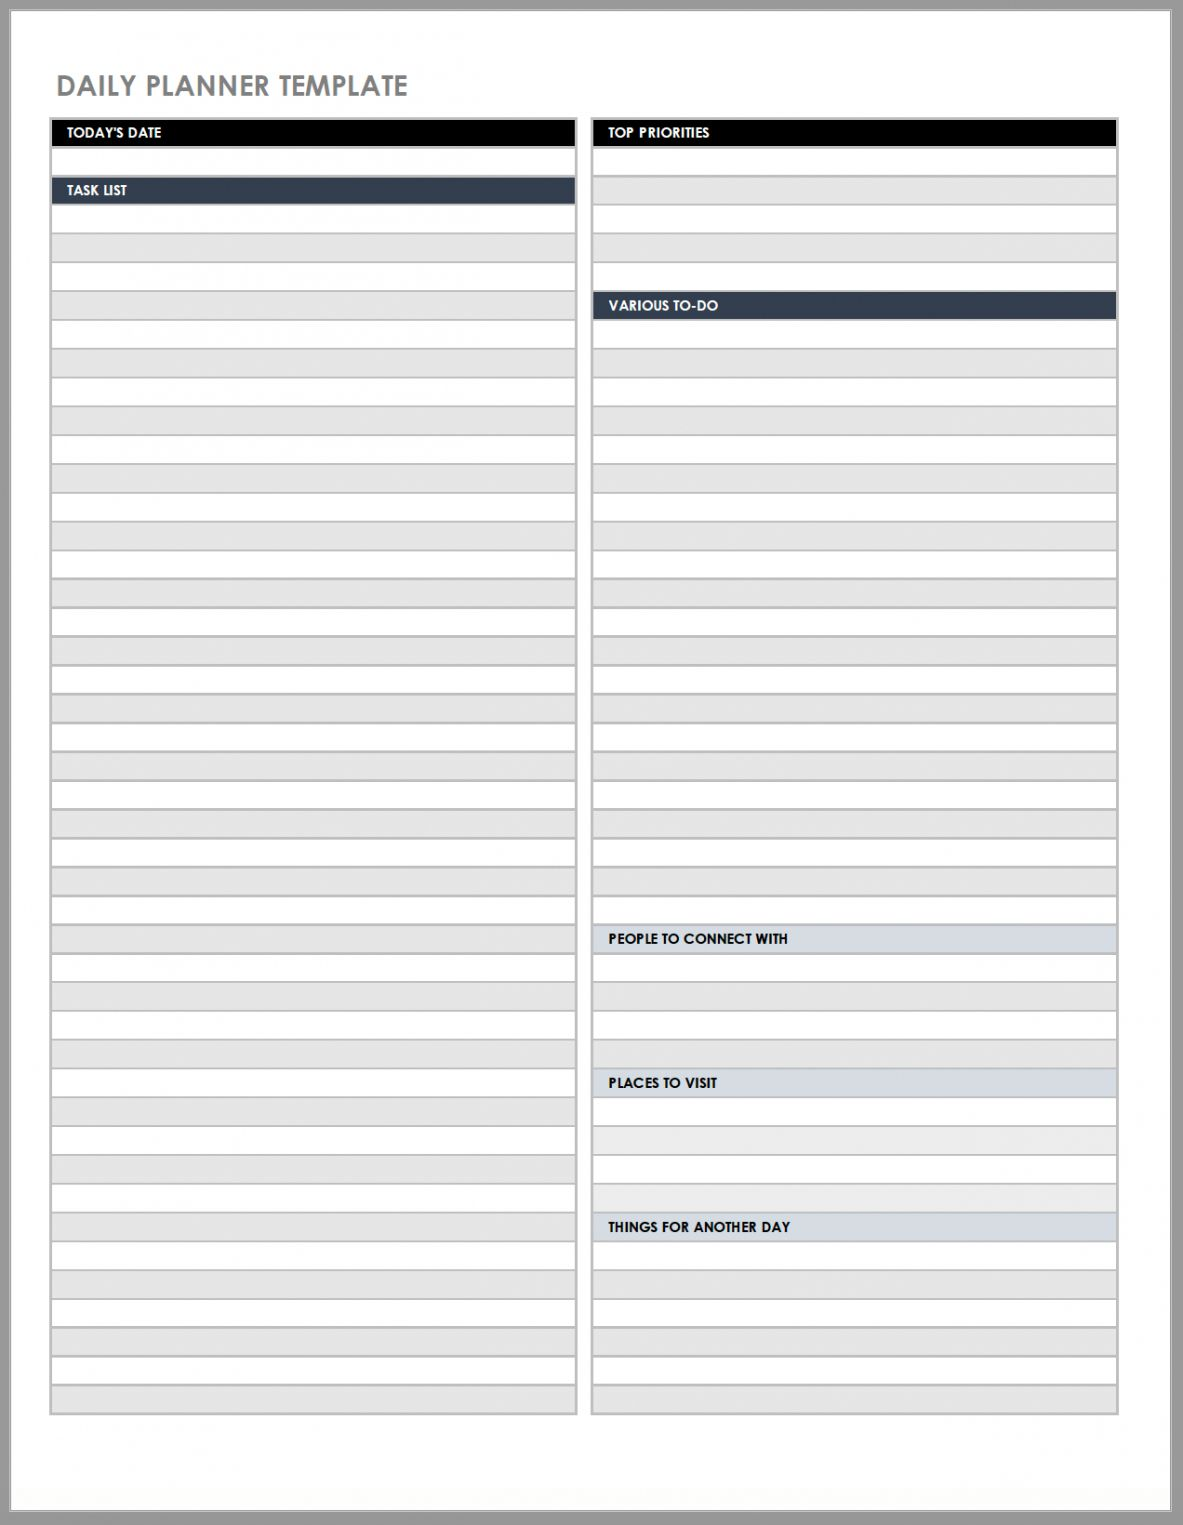 free daily work schedule templates smartsheet daily huddle